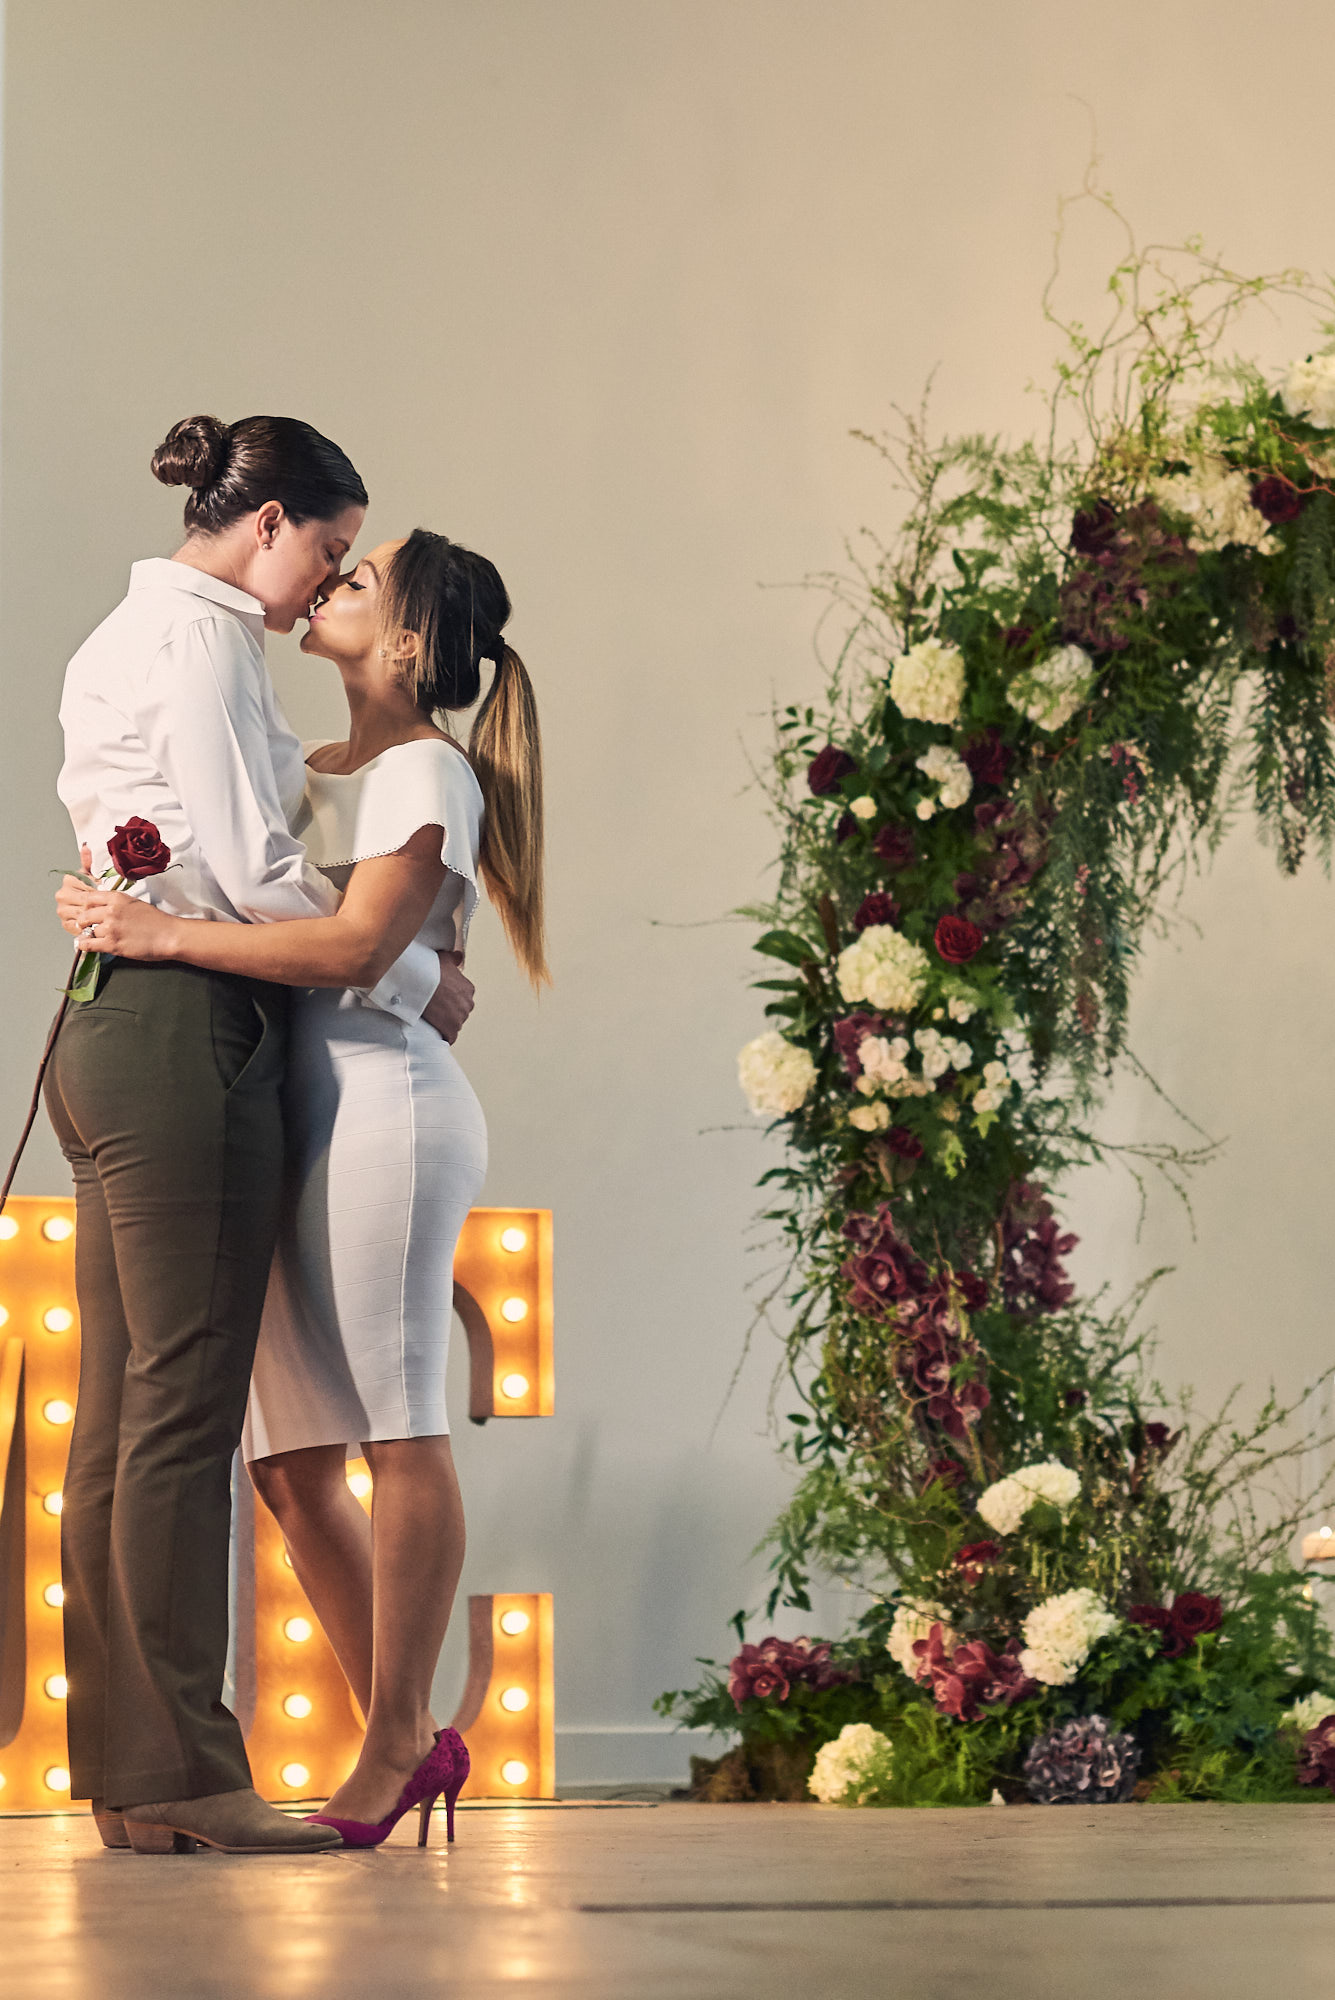 Lesbian Engagement Photos.  Las Vegas Wedding Planner Andrea Eppolito designed the surprise engagement at the Mandarin Oriental for two brides to be.  Decor and lighting by Flora Couture and LED Unplugged, with photos by Fabio and Adri.